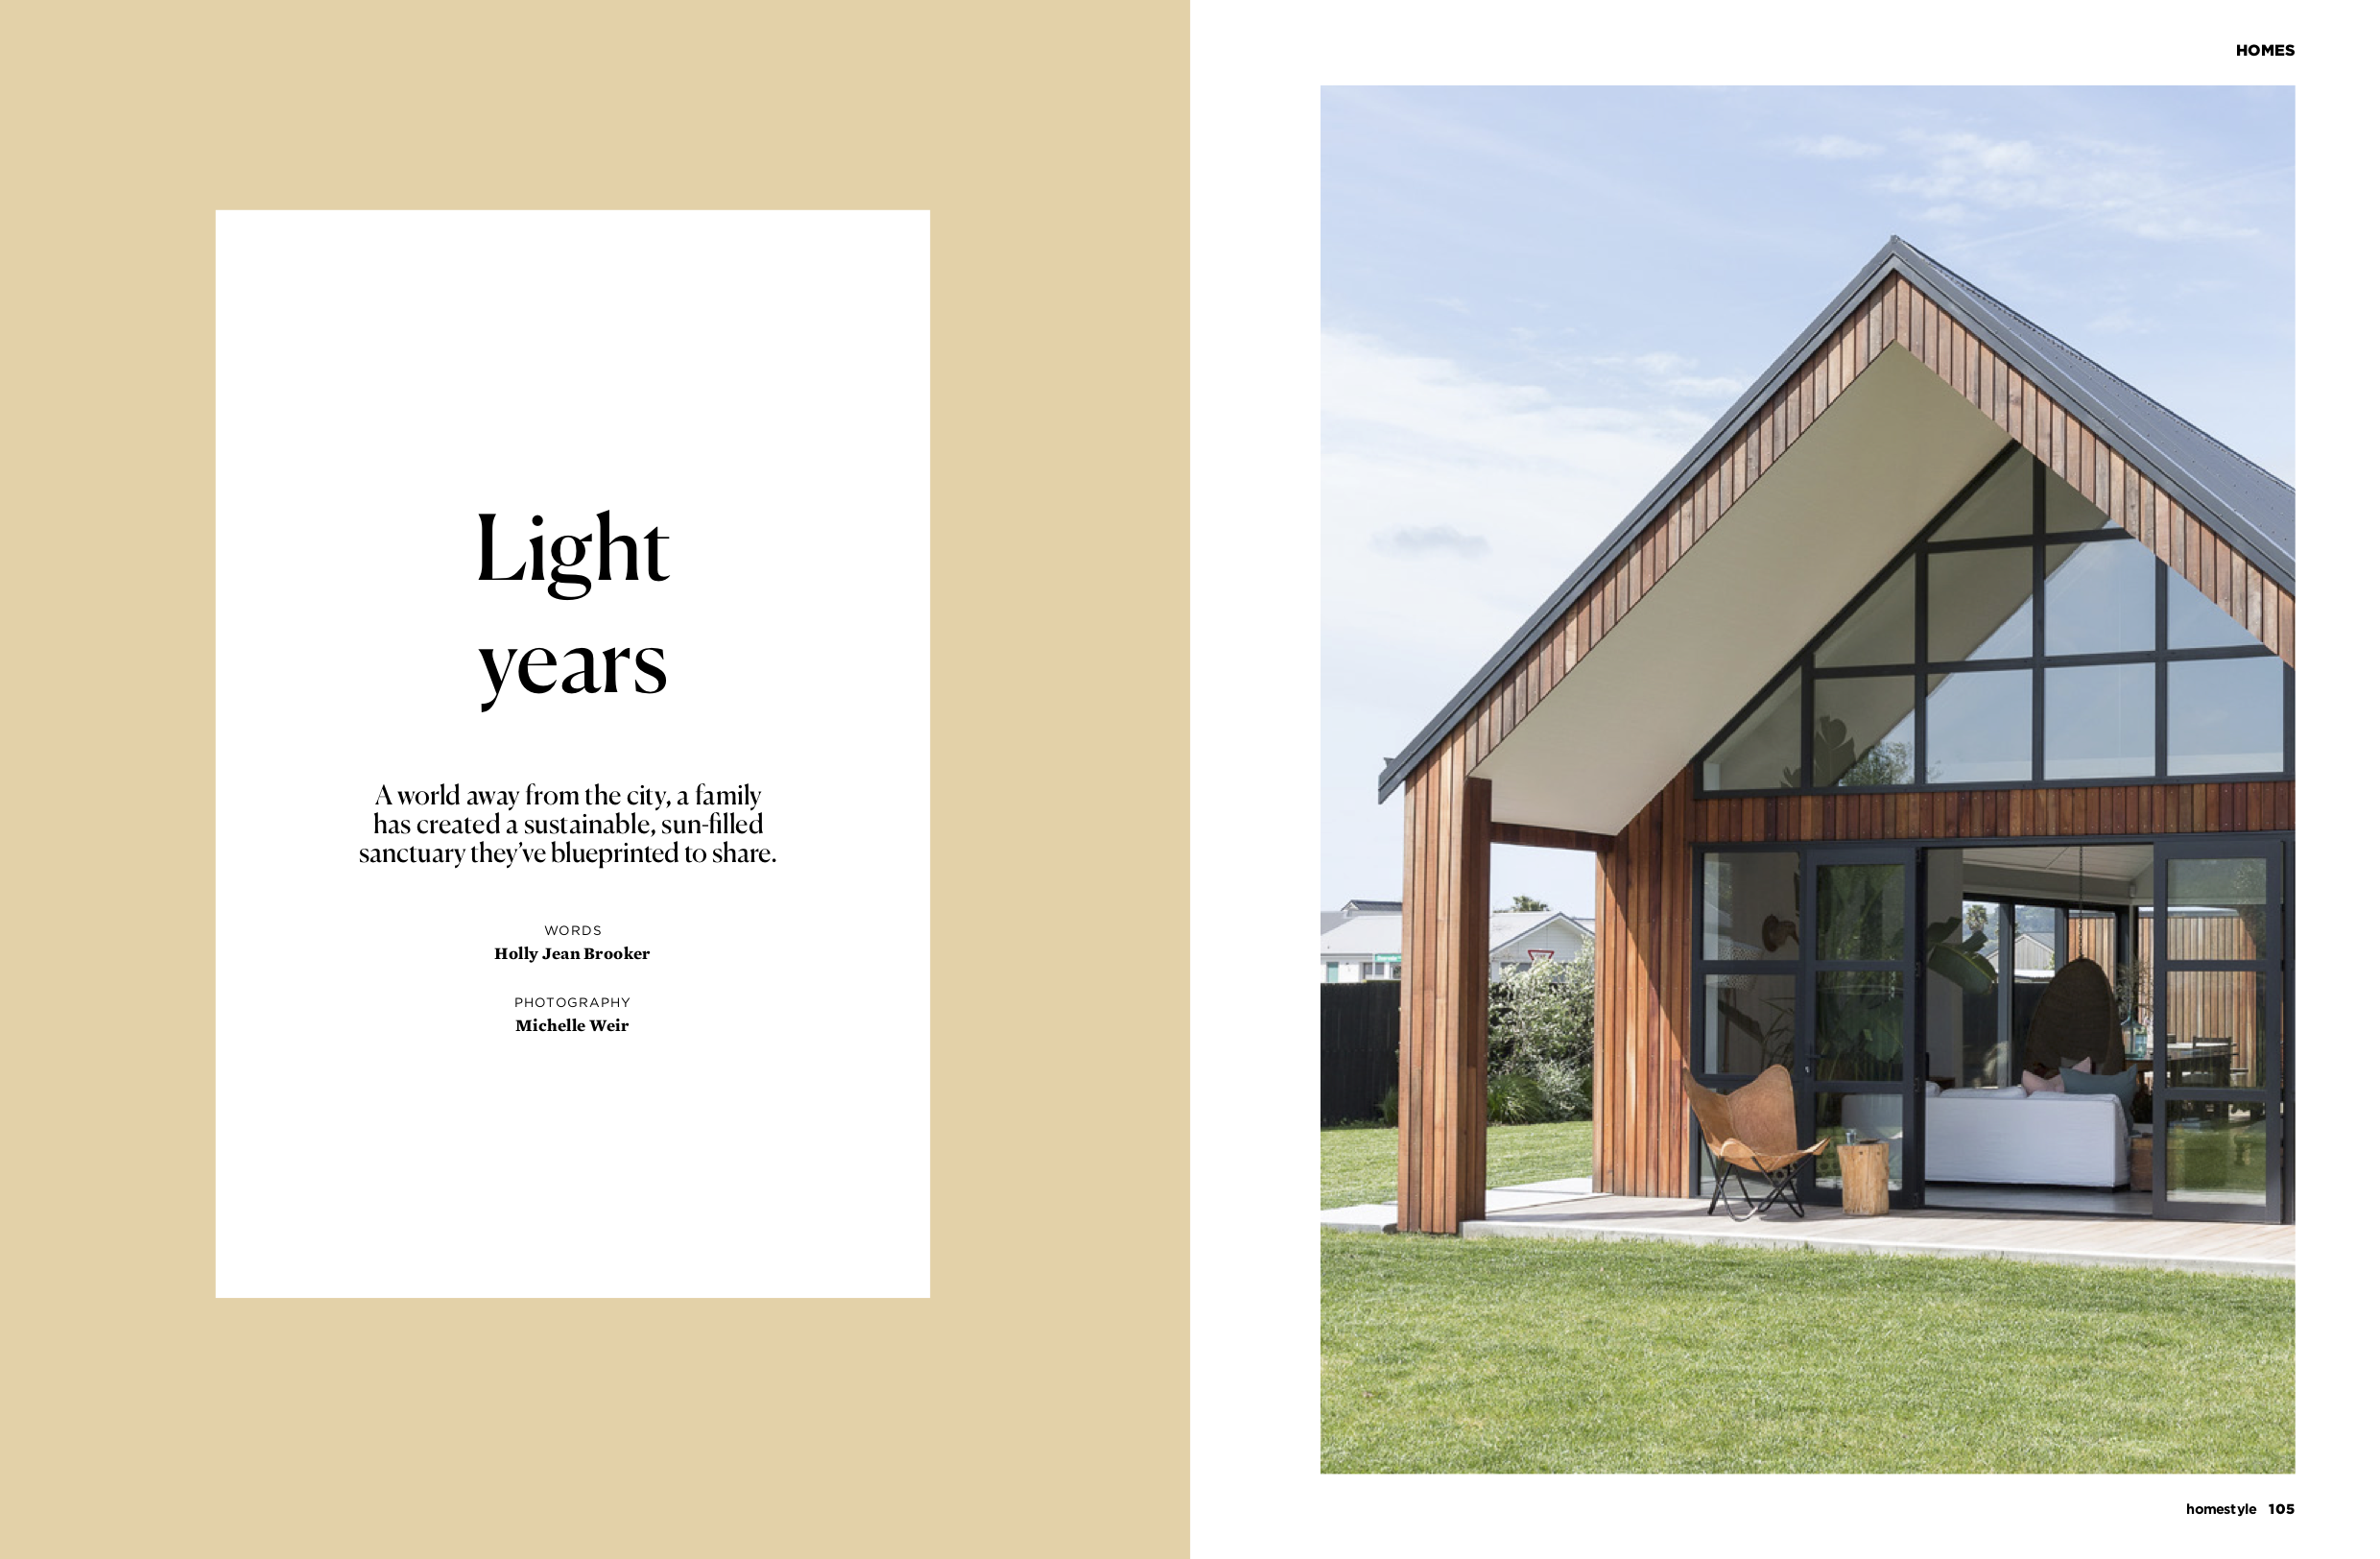 Homestyle Magazine 2018 - A world away from the city, a family has created a sustainable, sun-filled sanctuary they've blueprinted to share.Words by Holly Jean BrookerPhotography by Michelle Weir